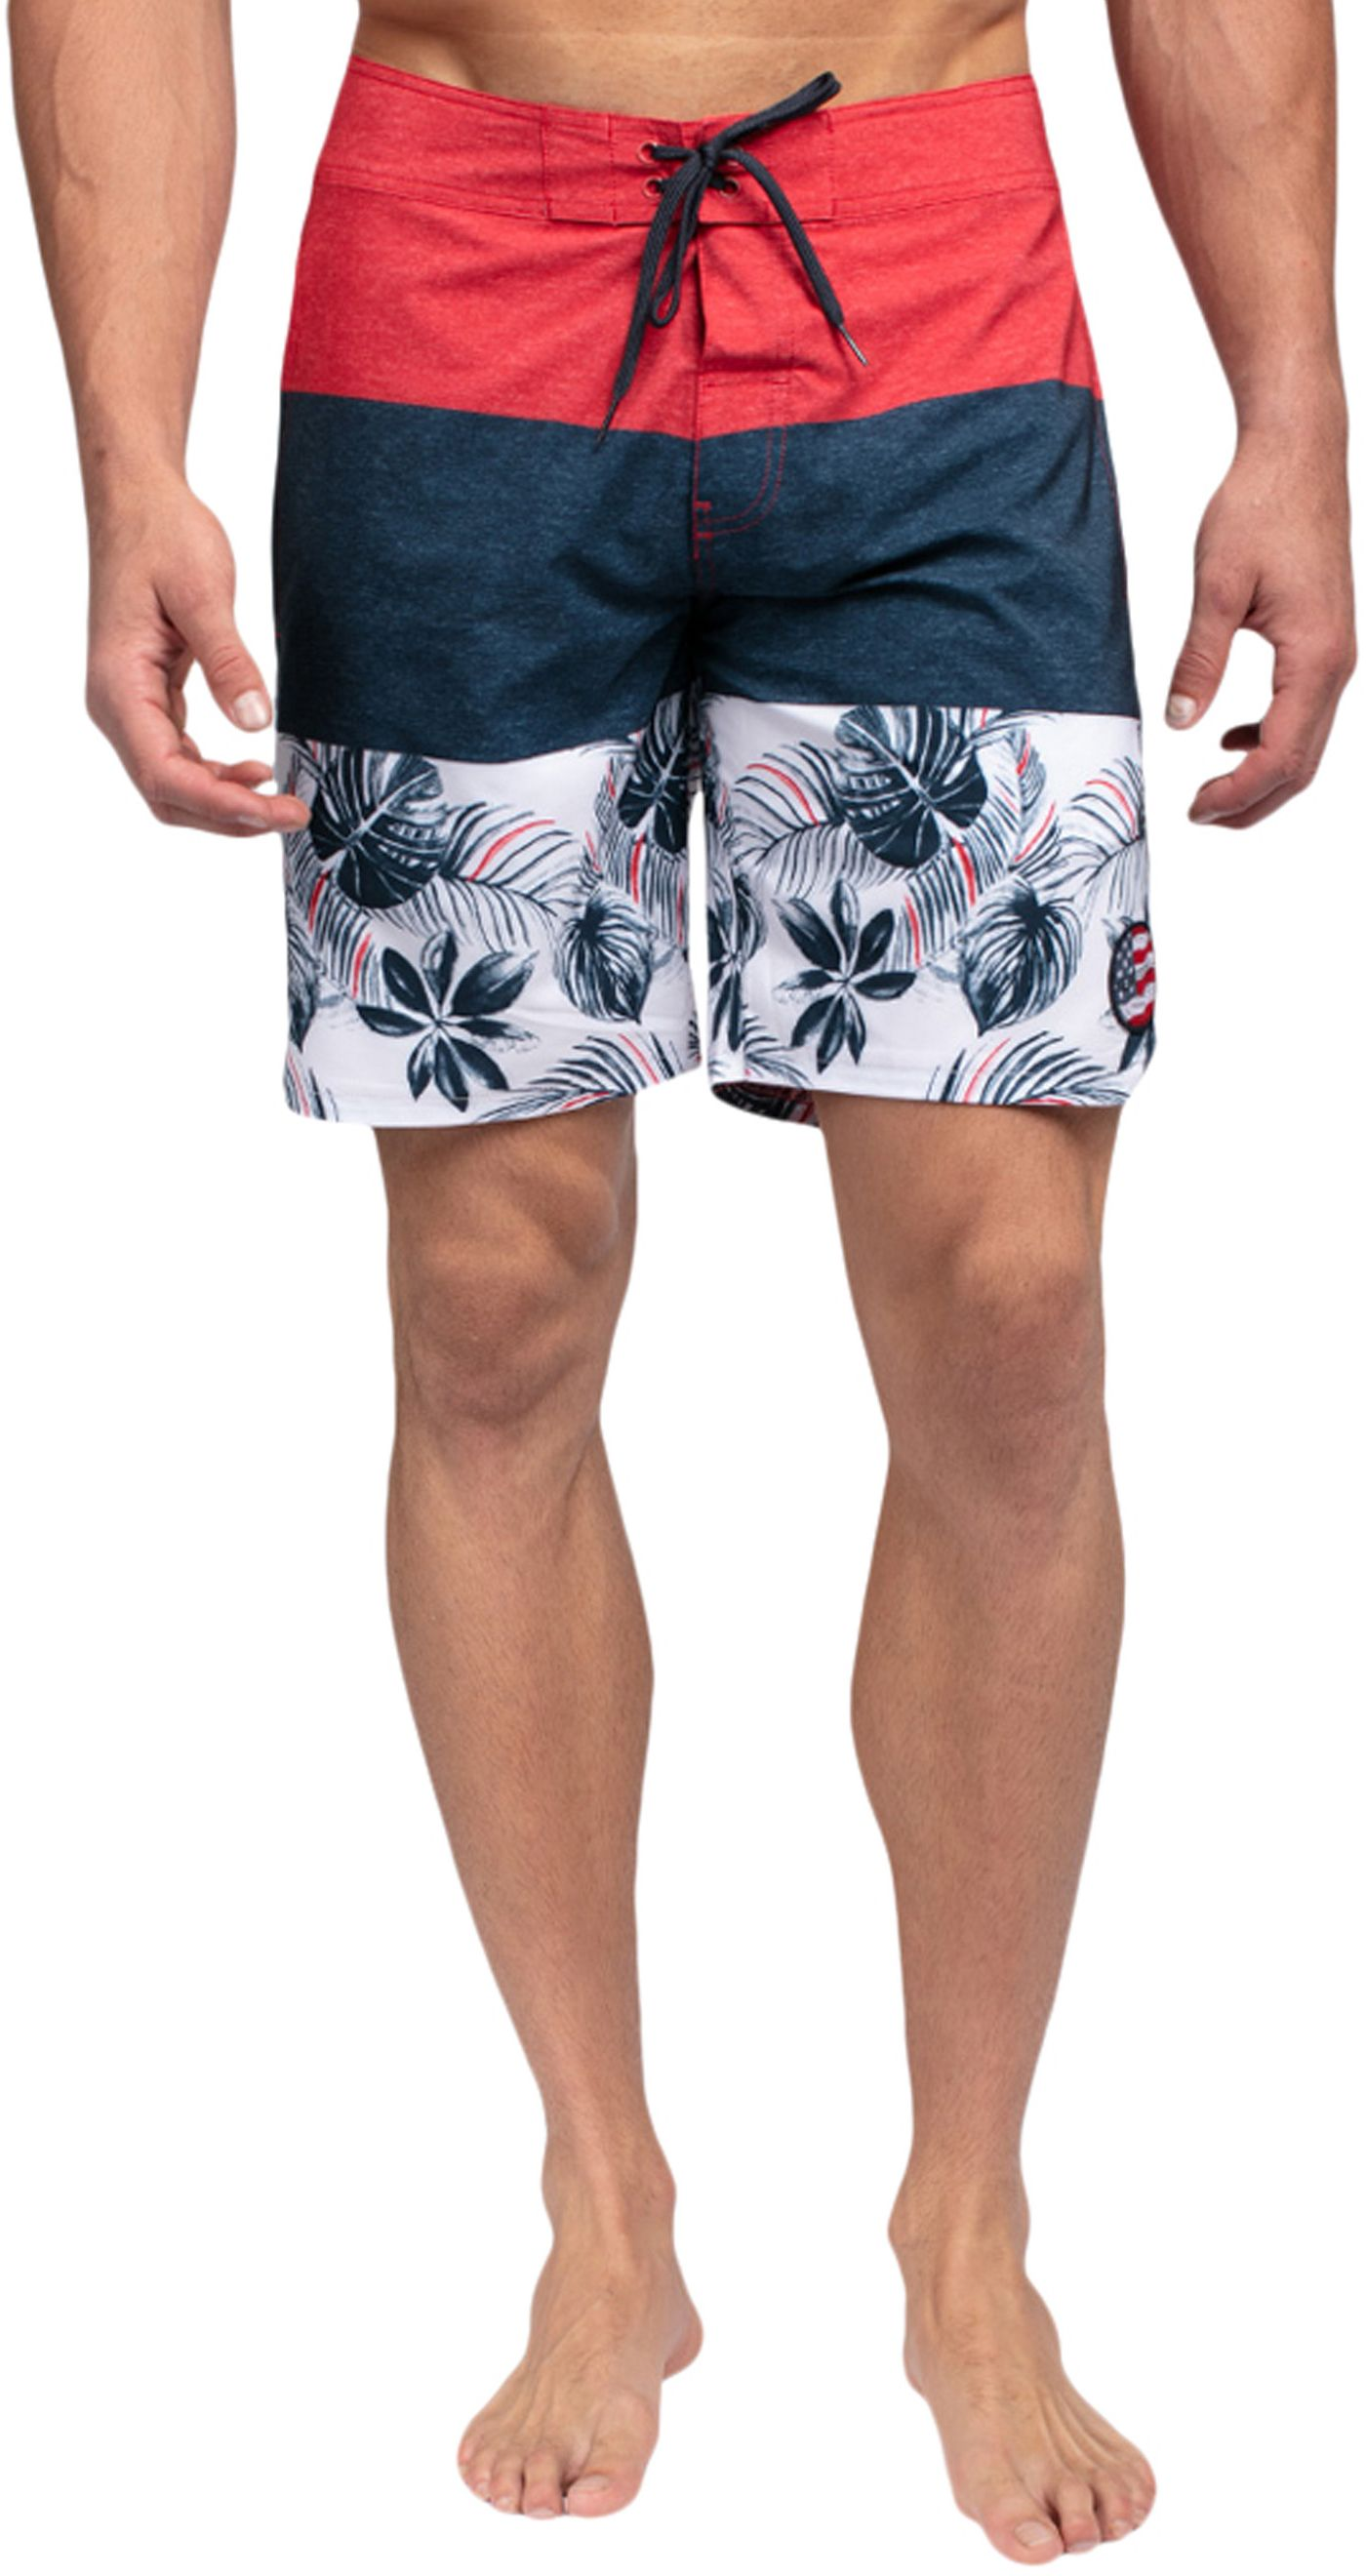 TravisMathew Men's Water Champ Board Shorts